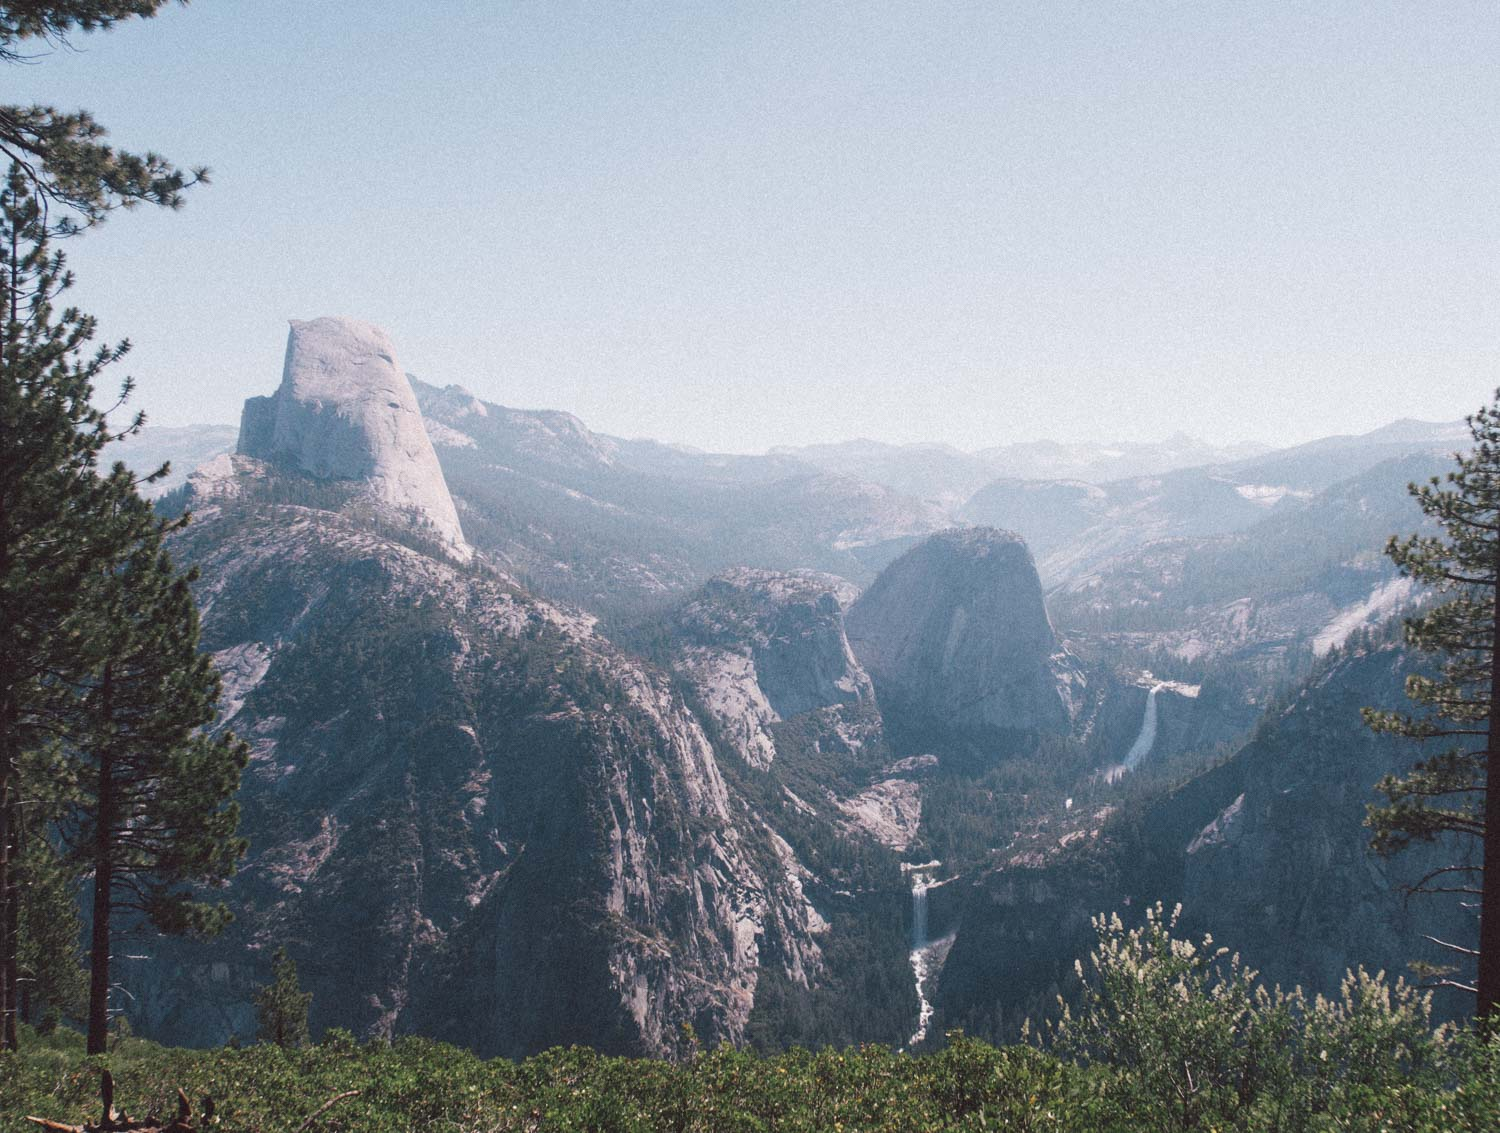 Elizabeth Hugen of Lizzie in Lace shares favorite things to do in Yosemite - including a visit to Glacier Point!